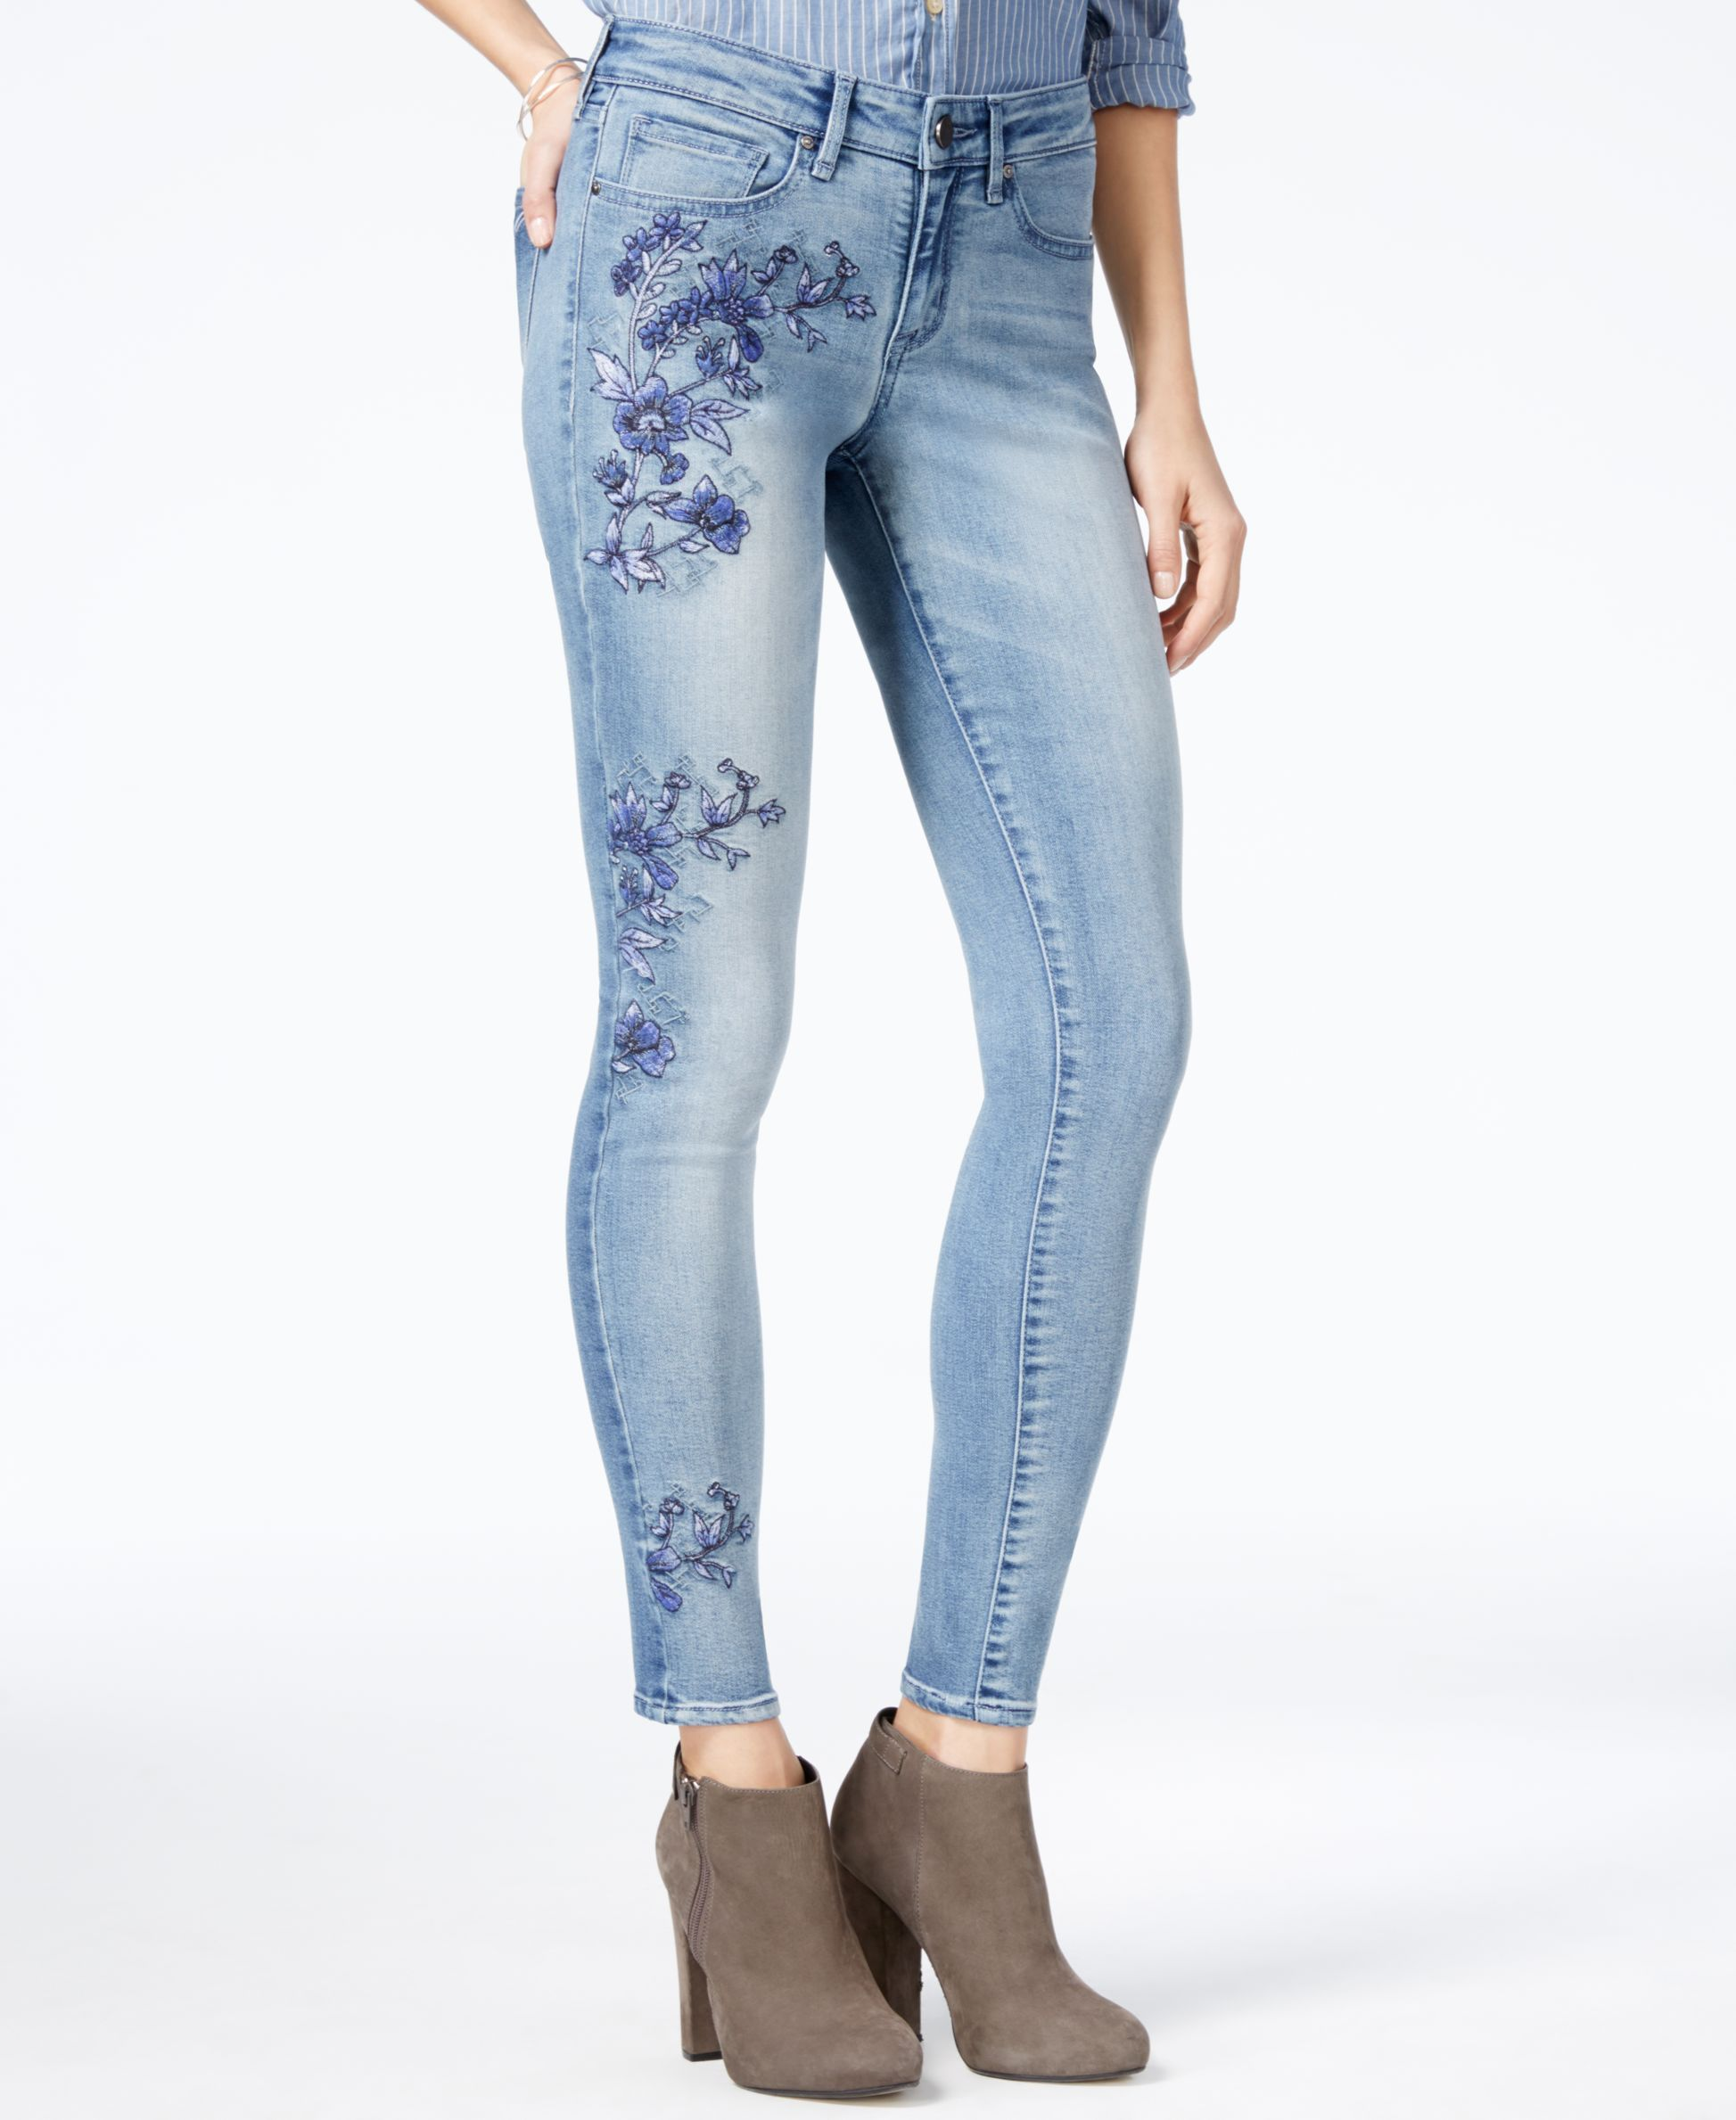 William rast upgrades its perfect skinny jeans with sweet floral william rast the perfect skinny azusa wash embroidered jeans blue 25 ccuart Gallery